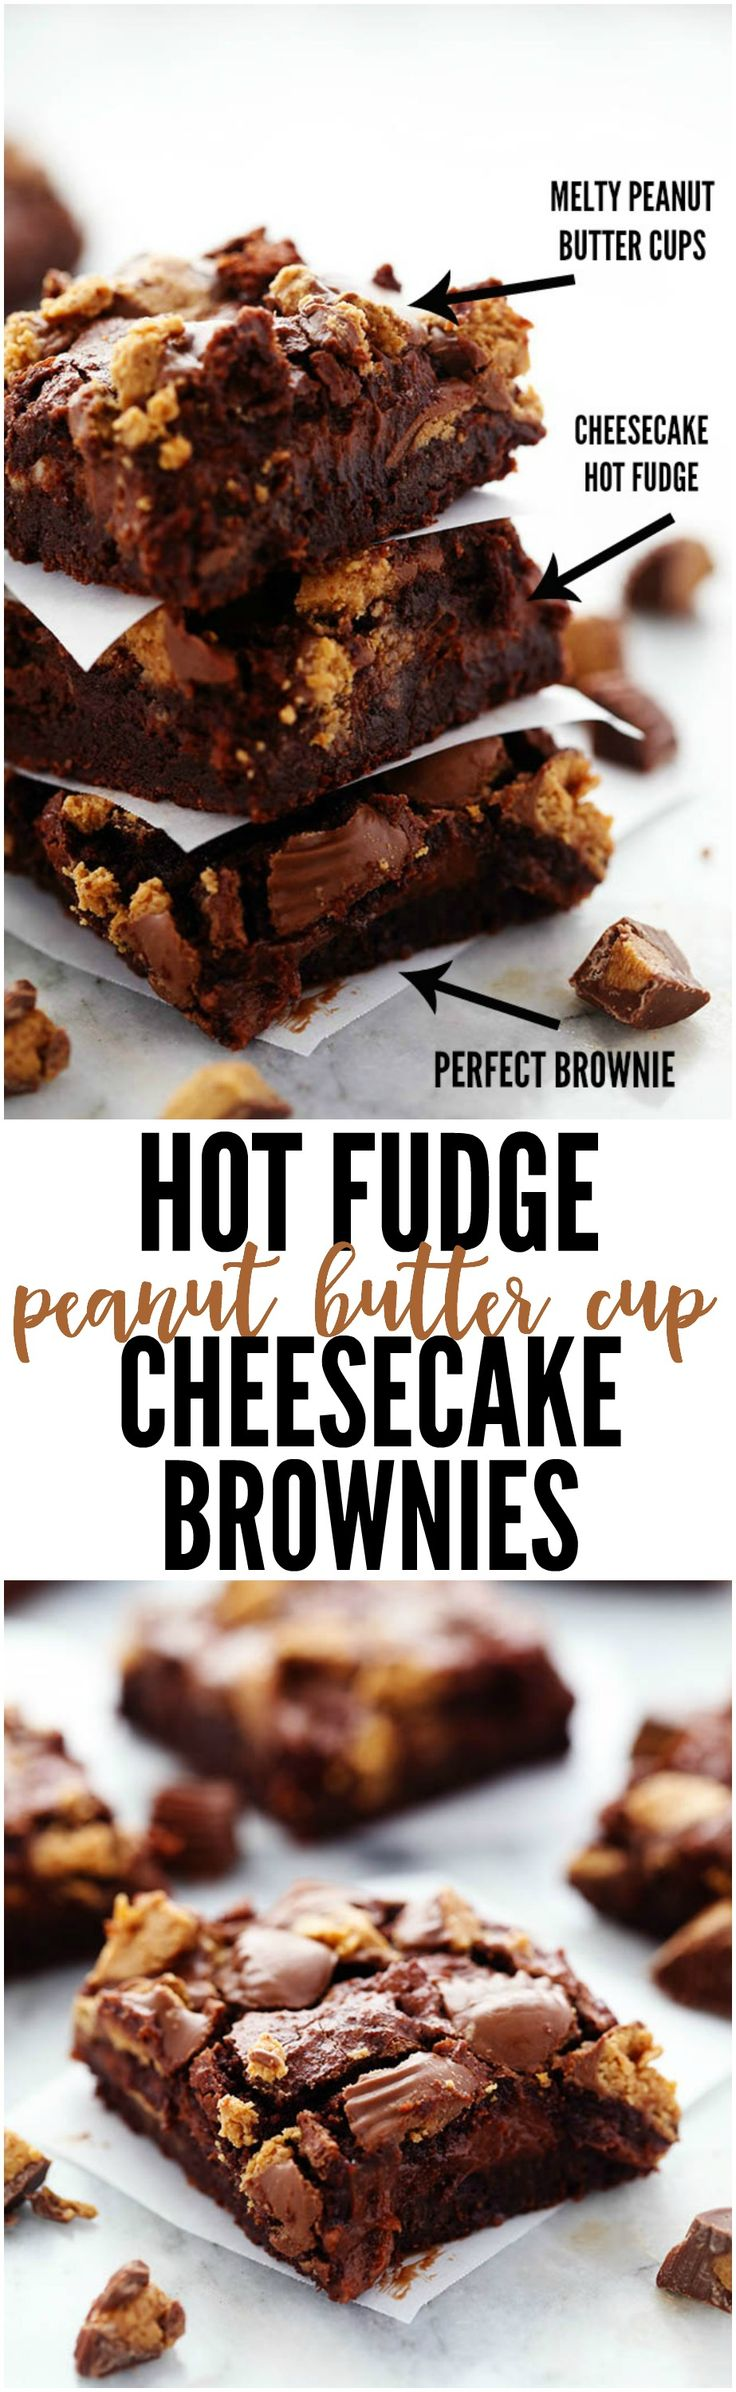 Ultra rich brownies with a creamy hot fudge cheesecake center and topped with peanut butter cups. So many delicious things in one amazing brownie that your family will go crazy for!